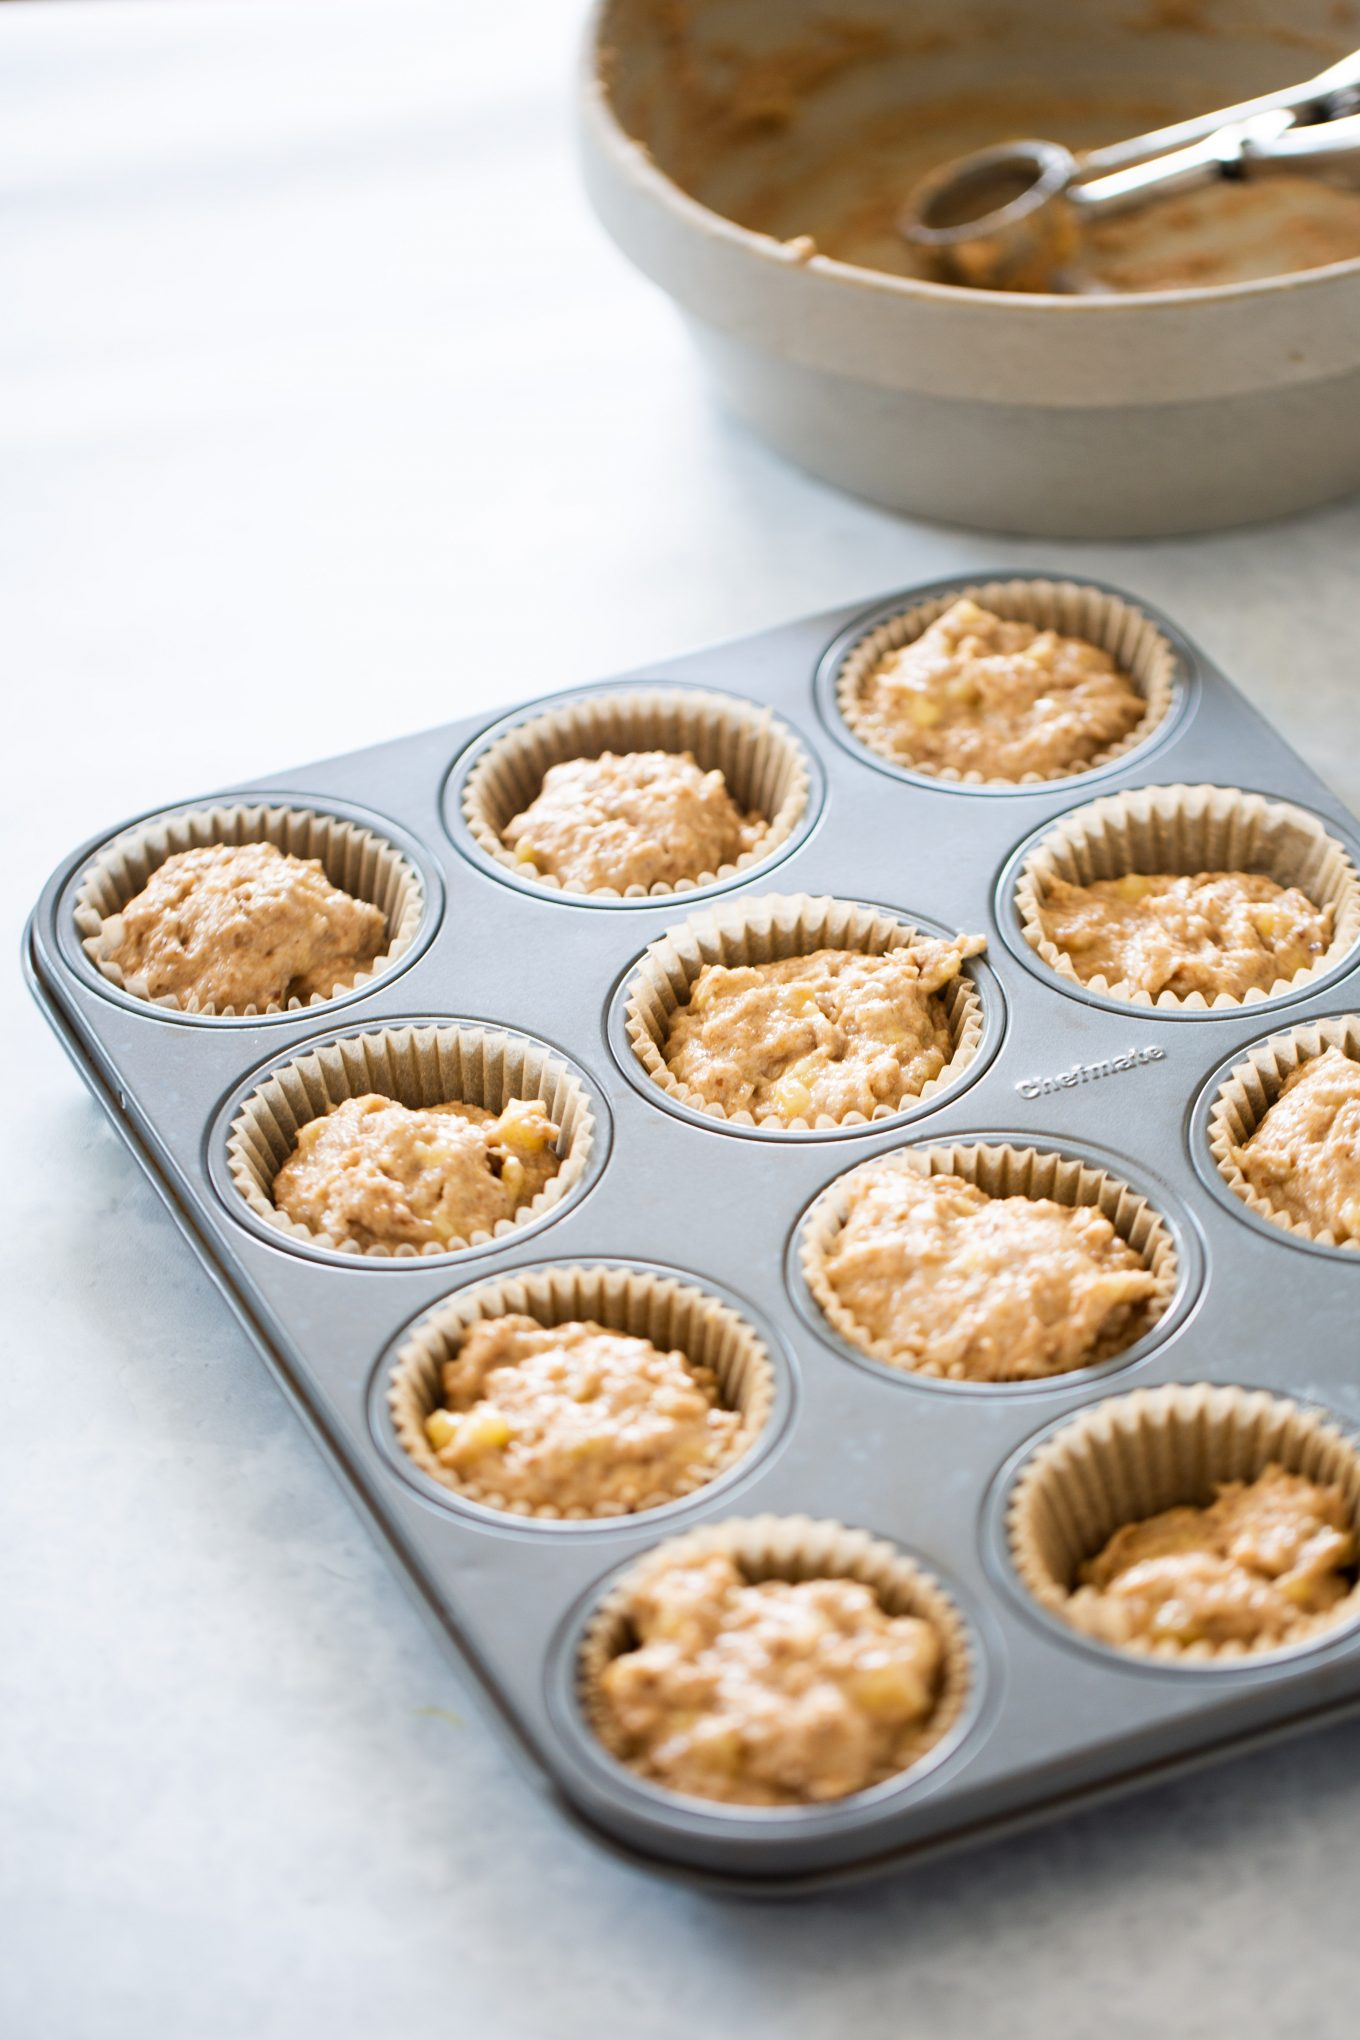 Banana muffins before being baked